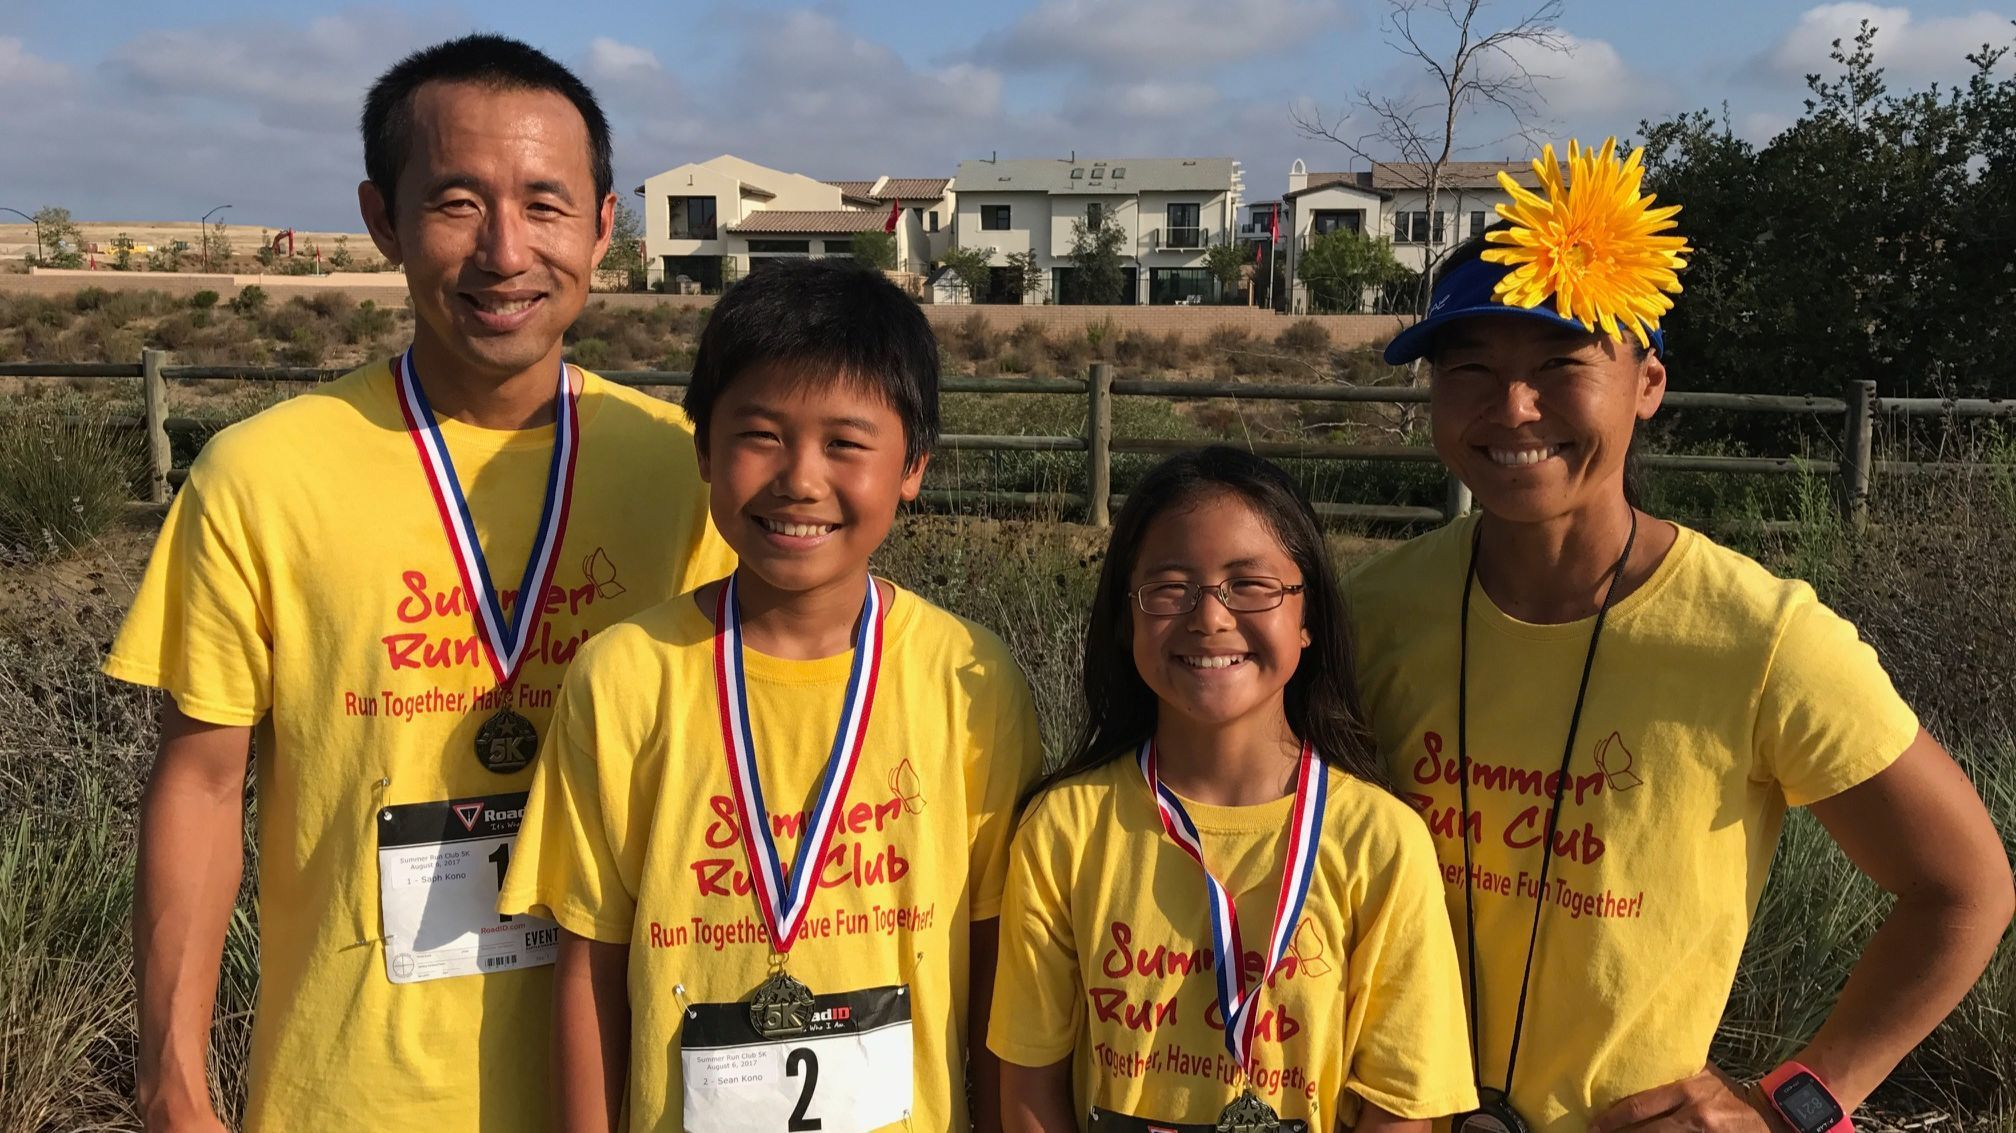 The Kono family runners.